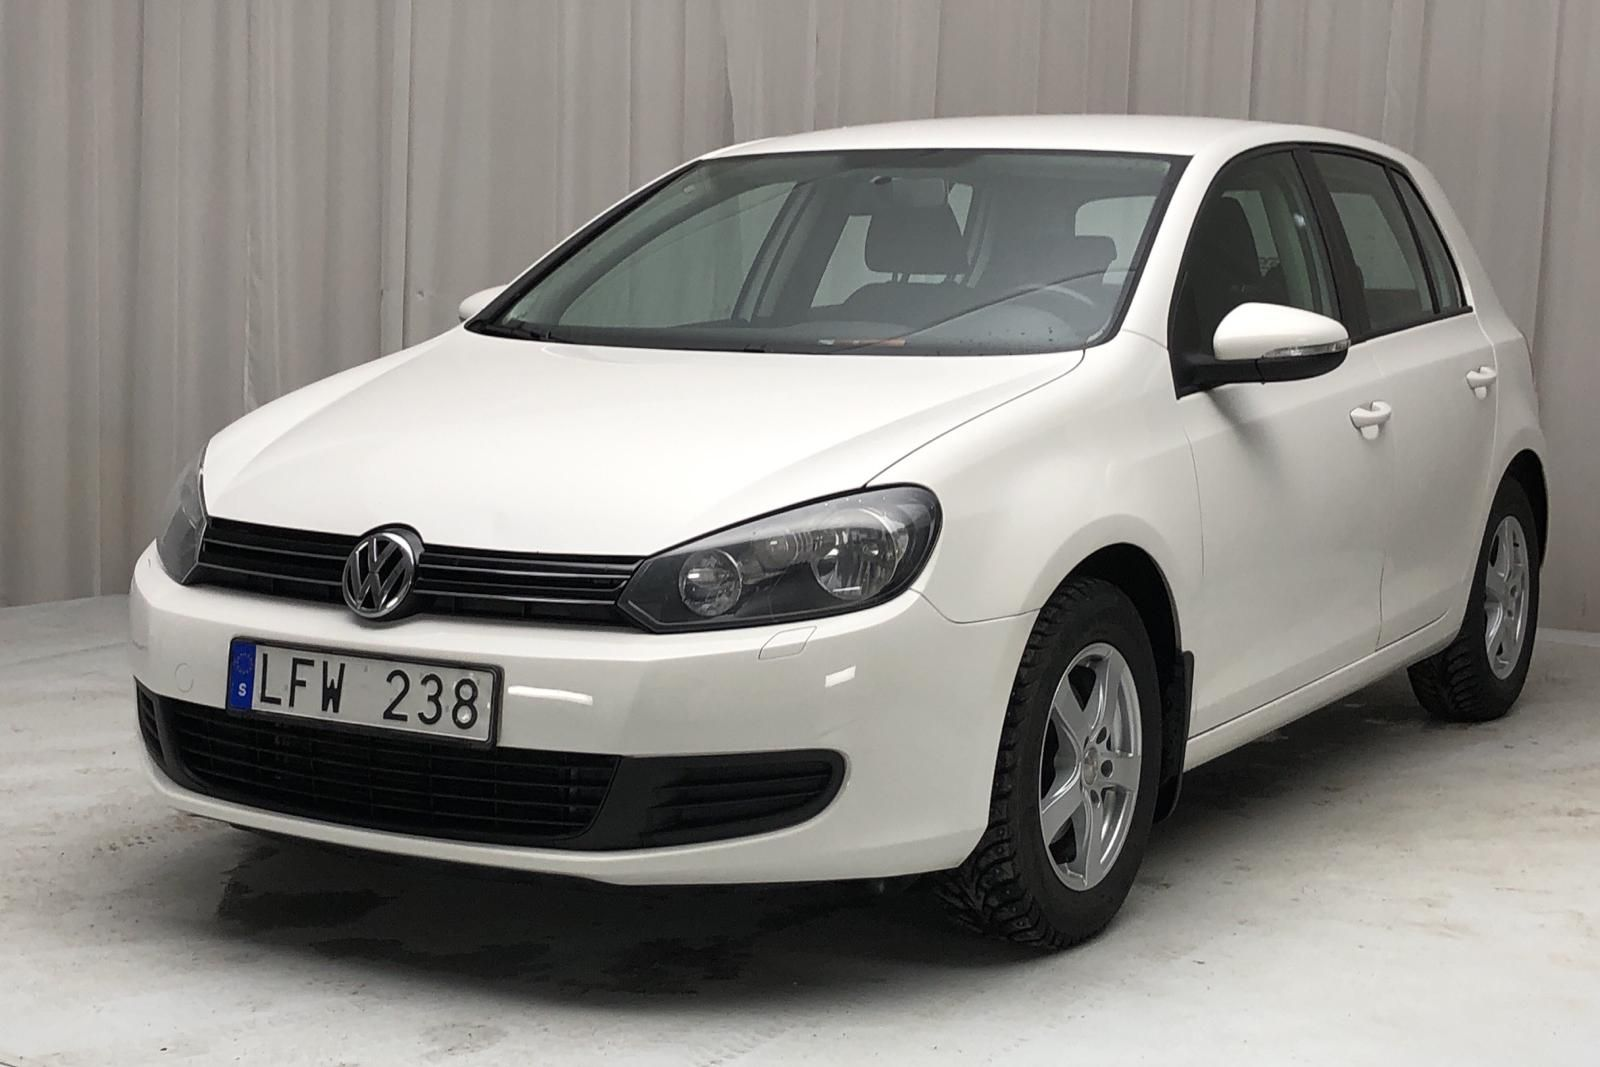 VW Golf VI 1.6 TDI BlueMotion Technologie 5dr (105hk)